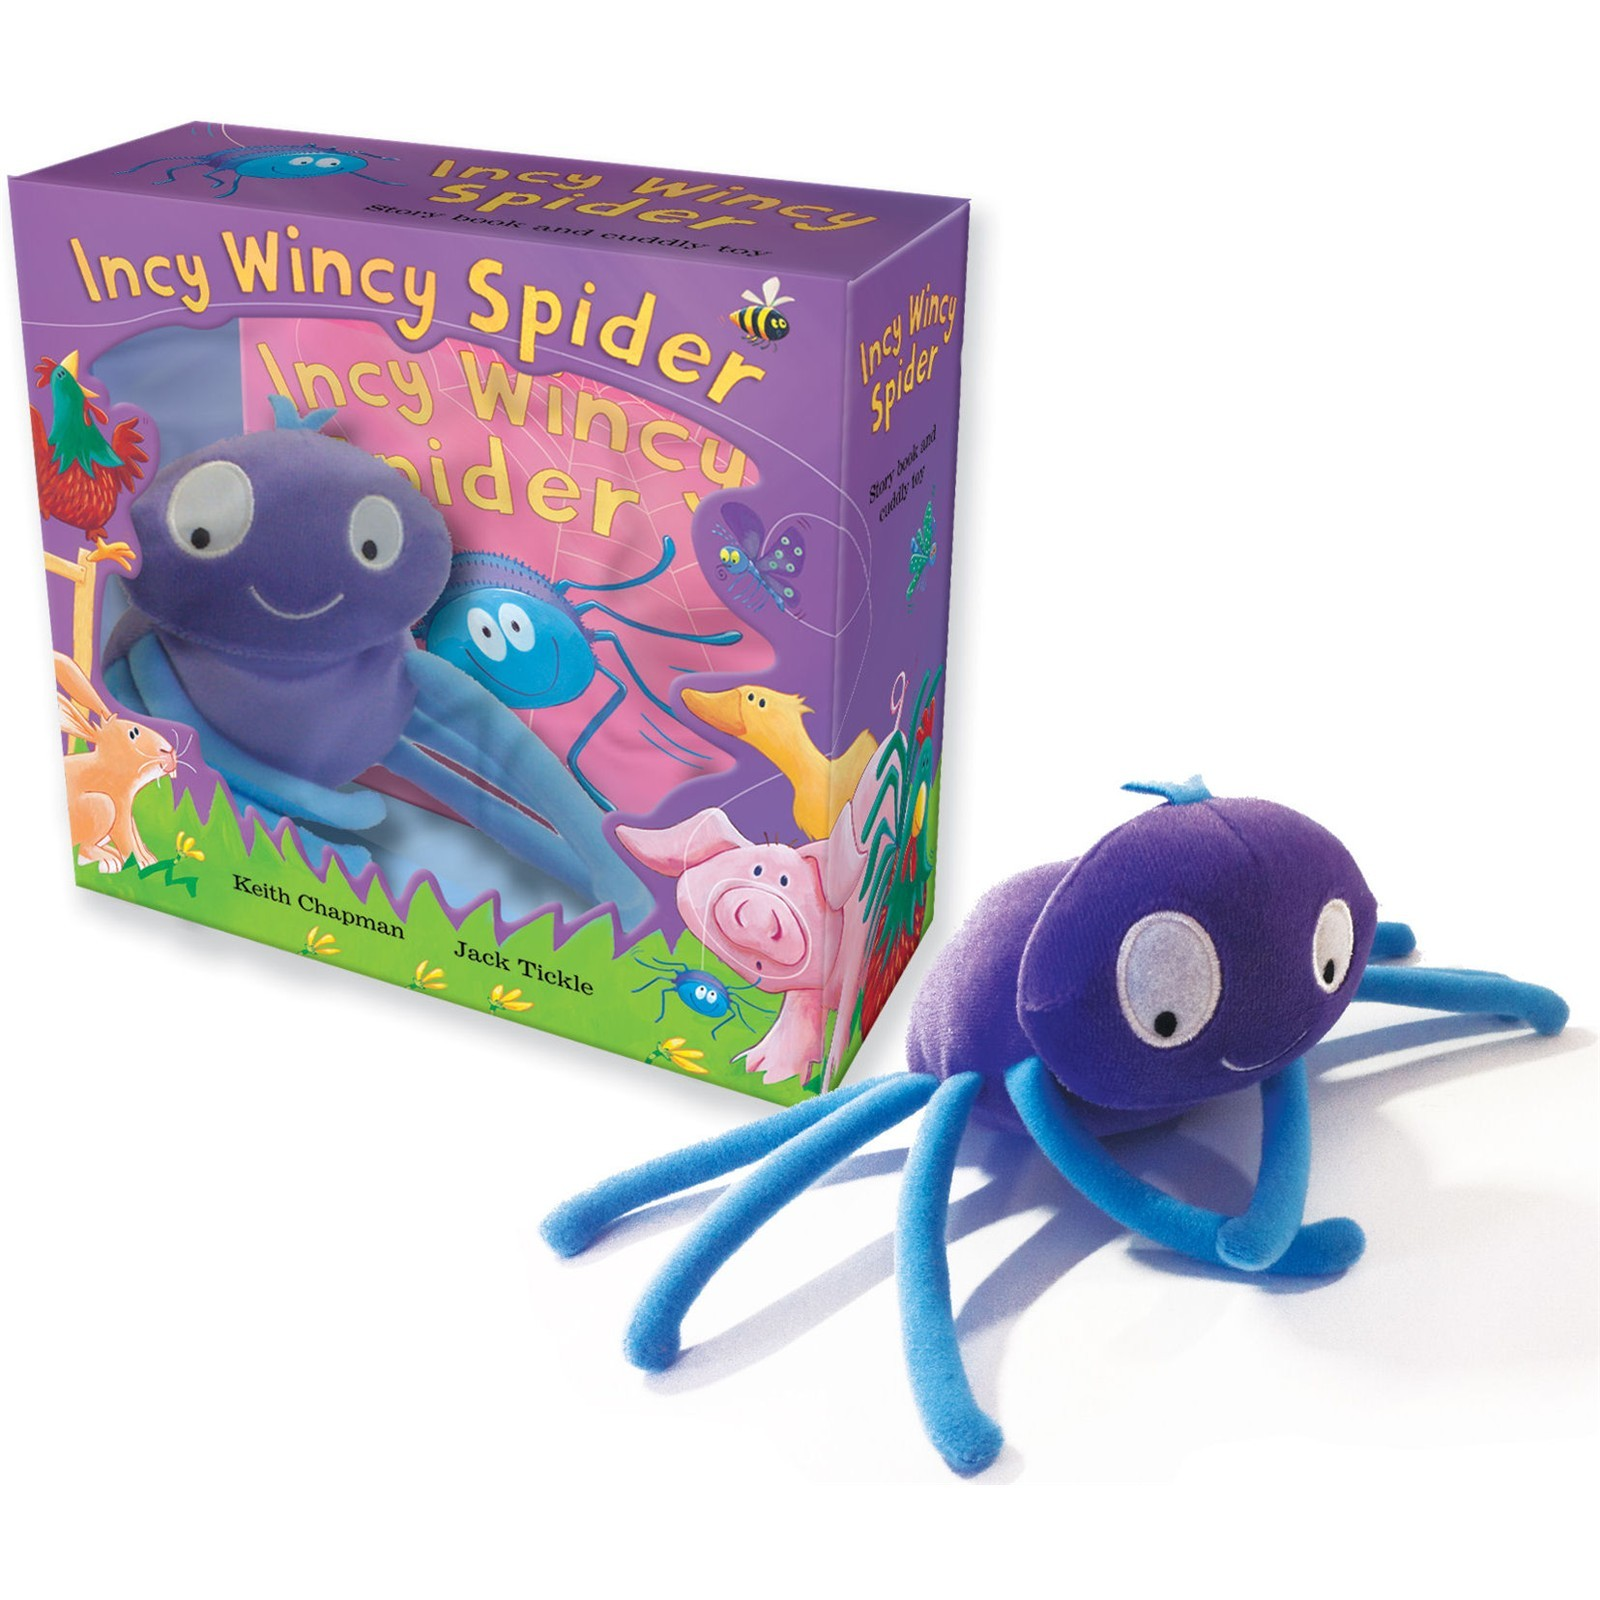 Incy Wincy Spider Collection Story Book And Cuddly Soft